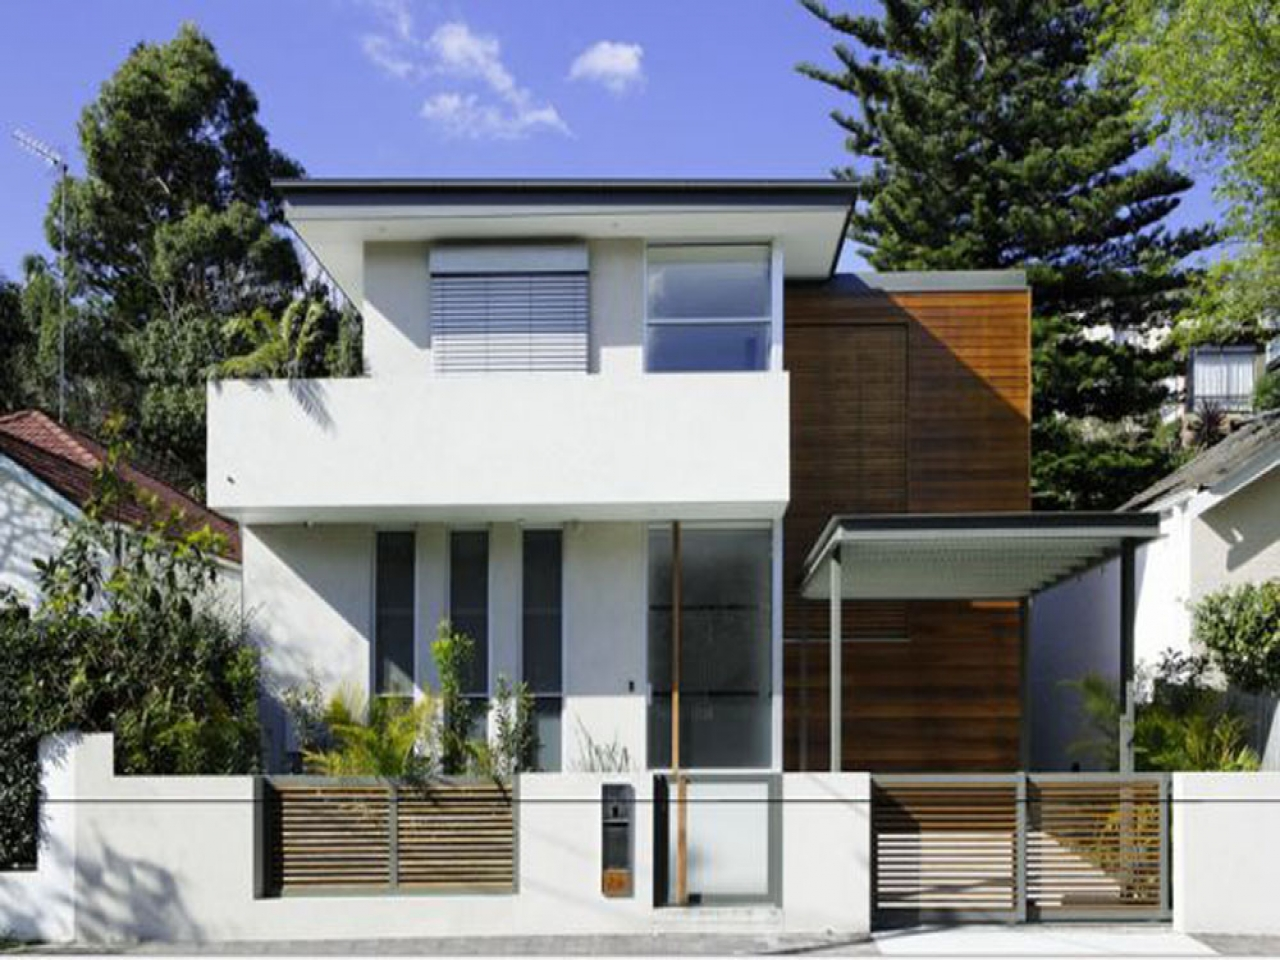 Contemporary House Design Ideas Of Small Modern Contemporary House Design Small Modern